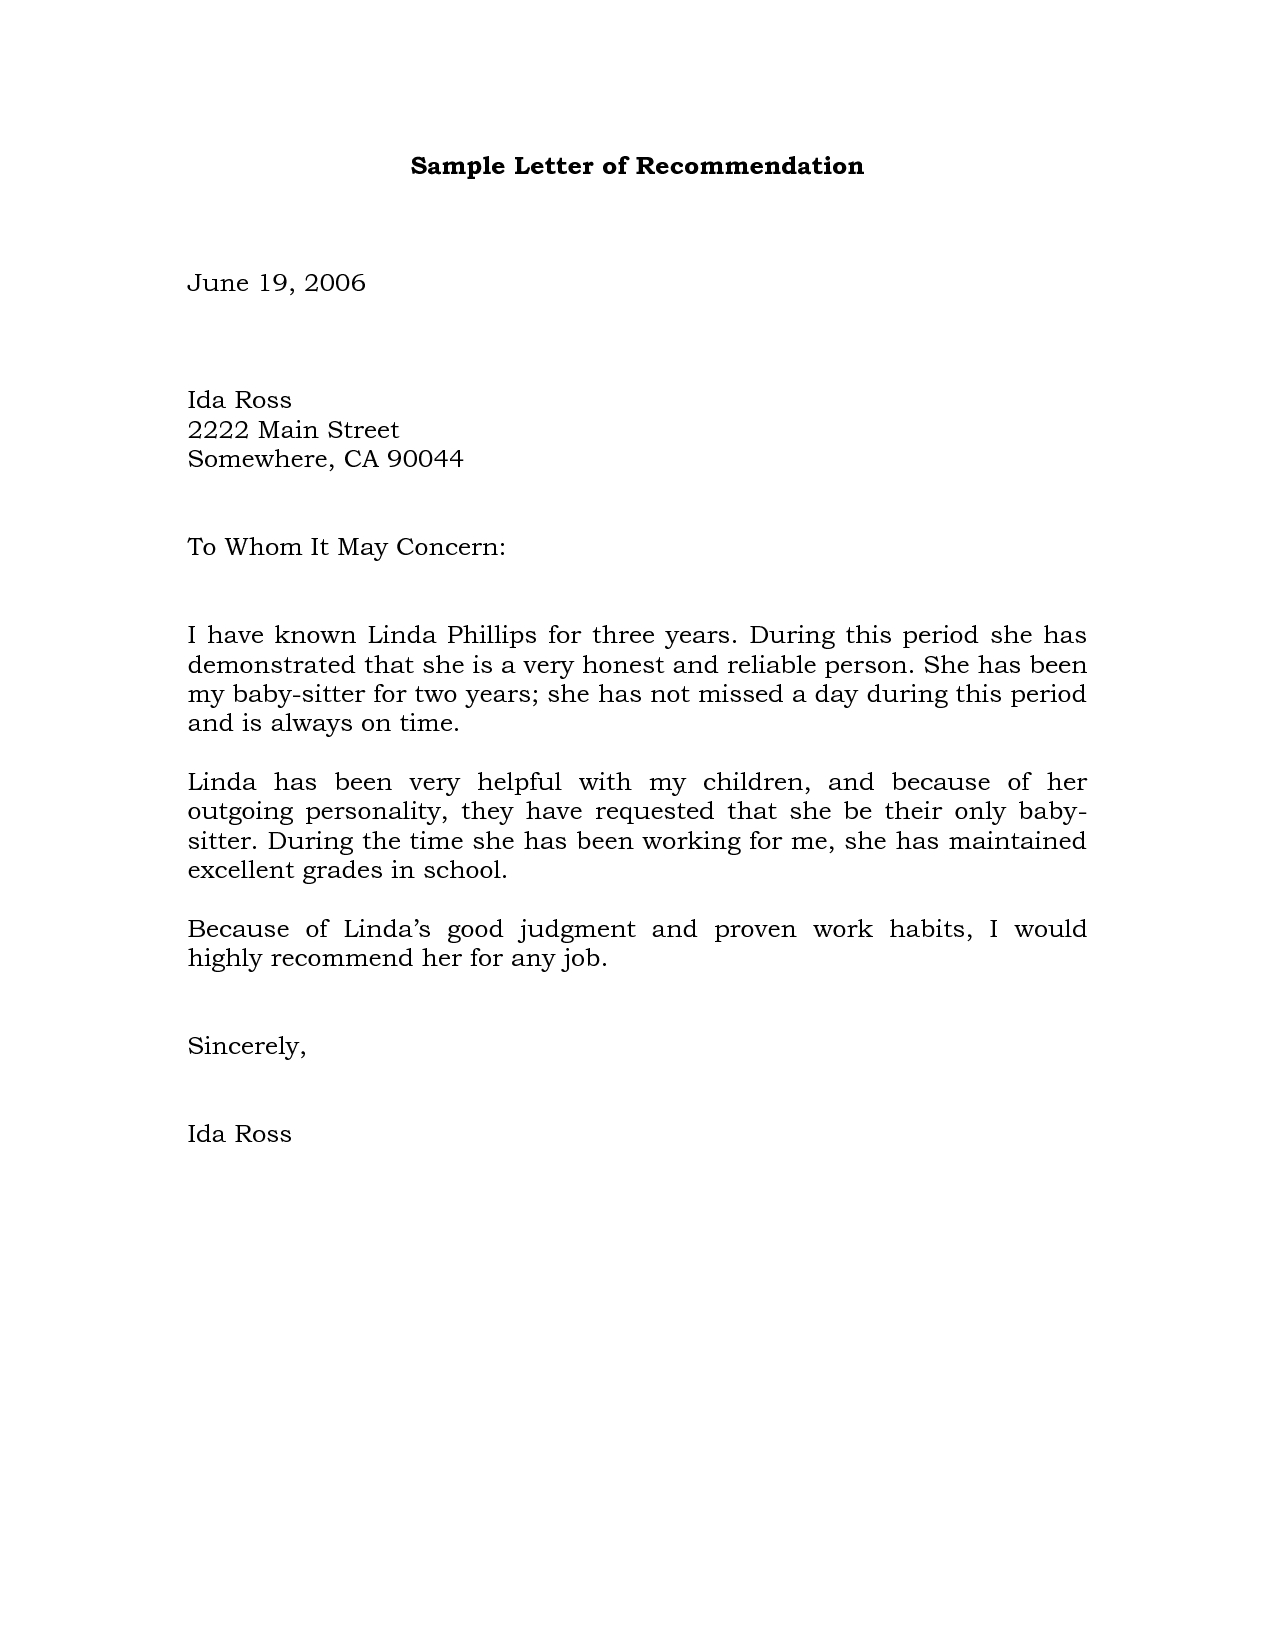 microsoft word letter of recommendation template